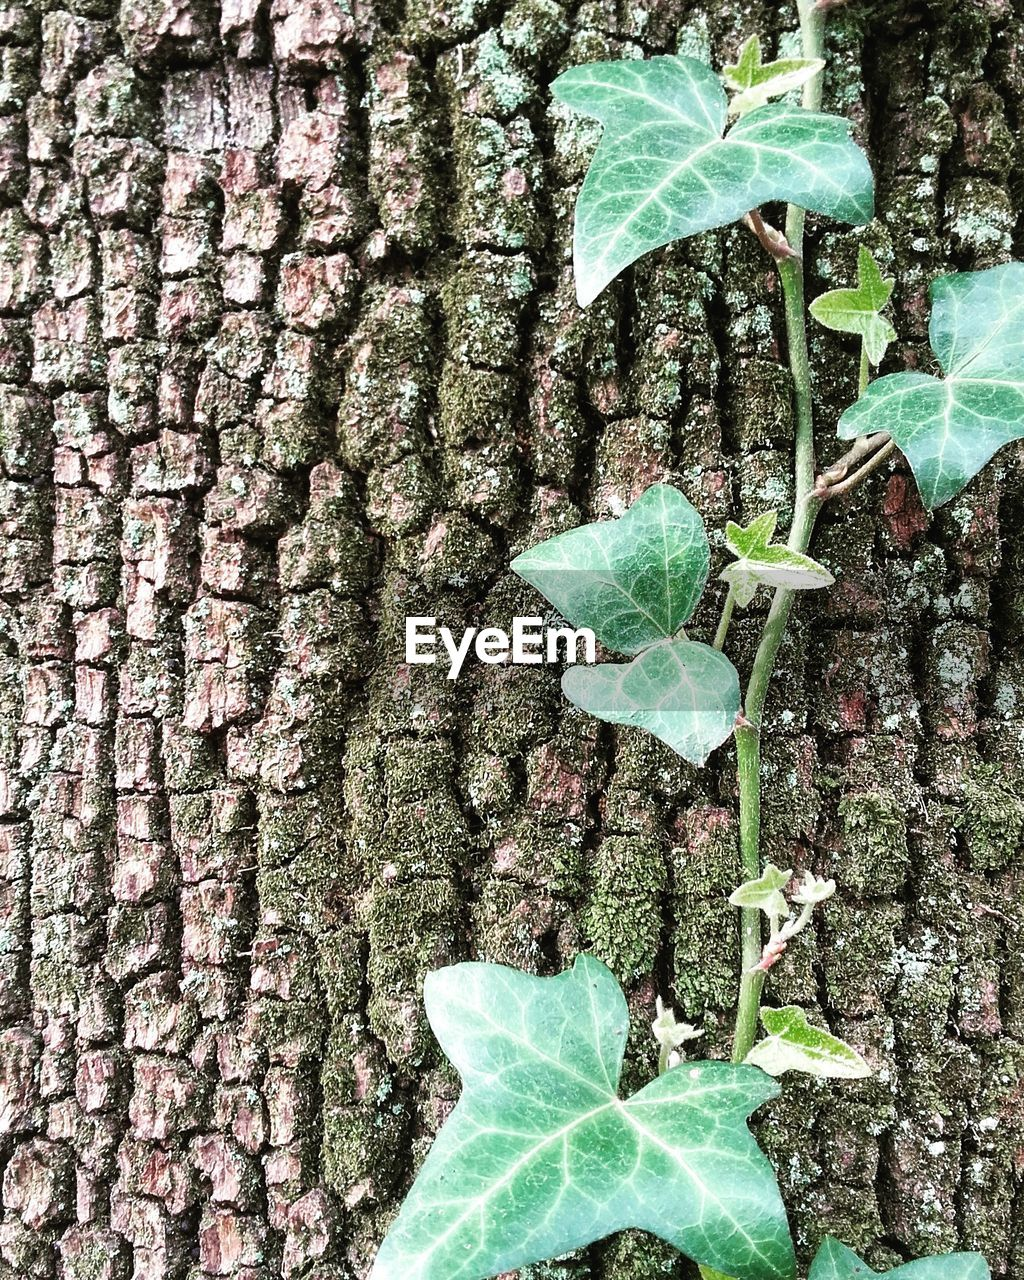 leaf, tree trunk, growth, green color, plant, day, ivy, nature, close-up, outdoors, tree, bark, no people, textured, fragility, beauty in nature